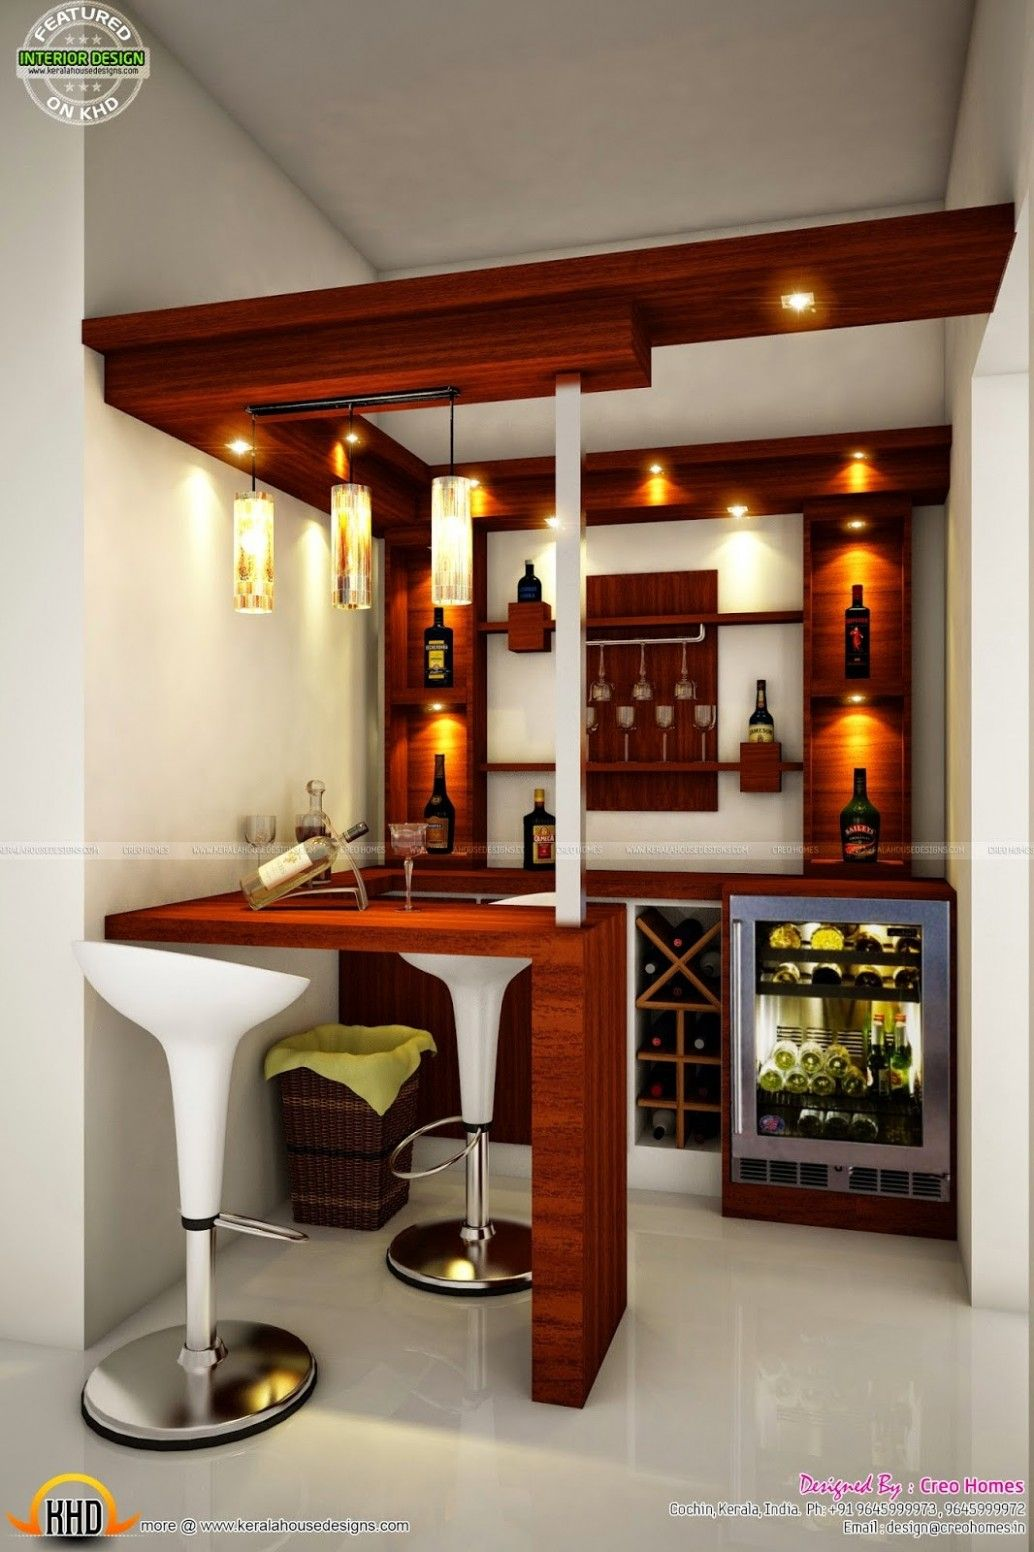 Pin By Miss Fashionista On Home Bar Designs Bar Counter Design Home Bar Designs Bars For Home